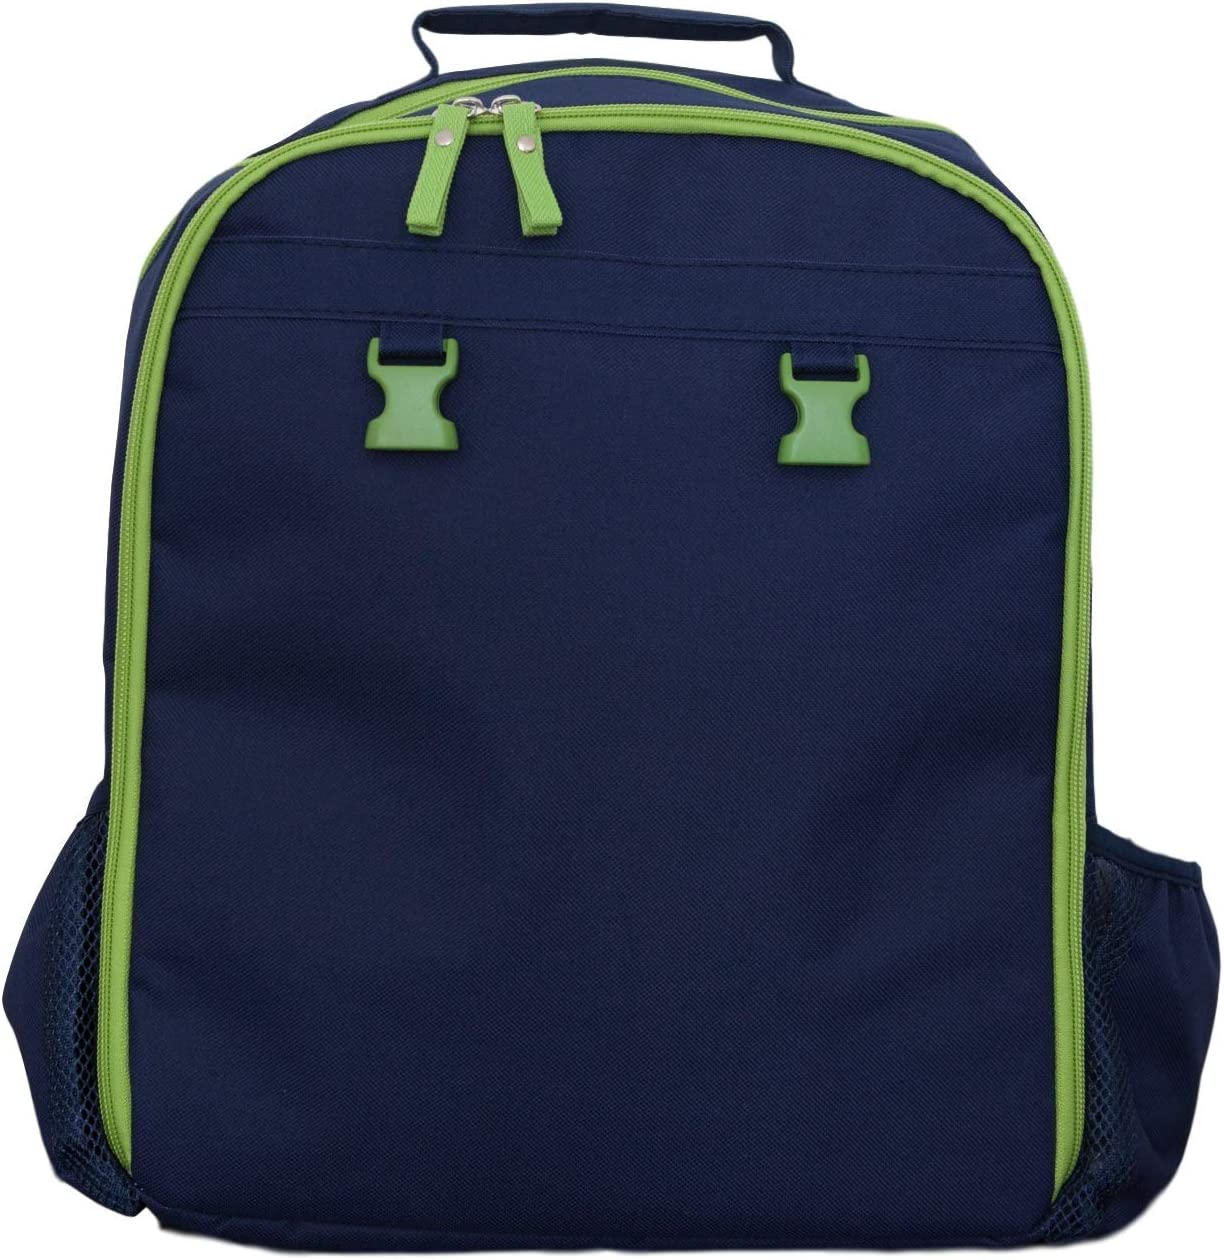 Embroidered Backpack for your Kids 12 x 6 x 15 Navy Personalized Backpack for Grade School or Preschool Boys and Girls